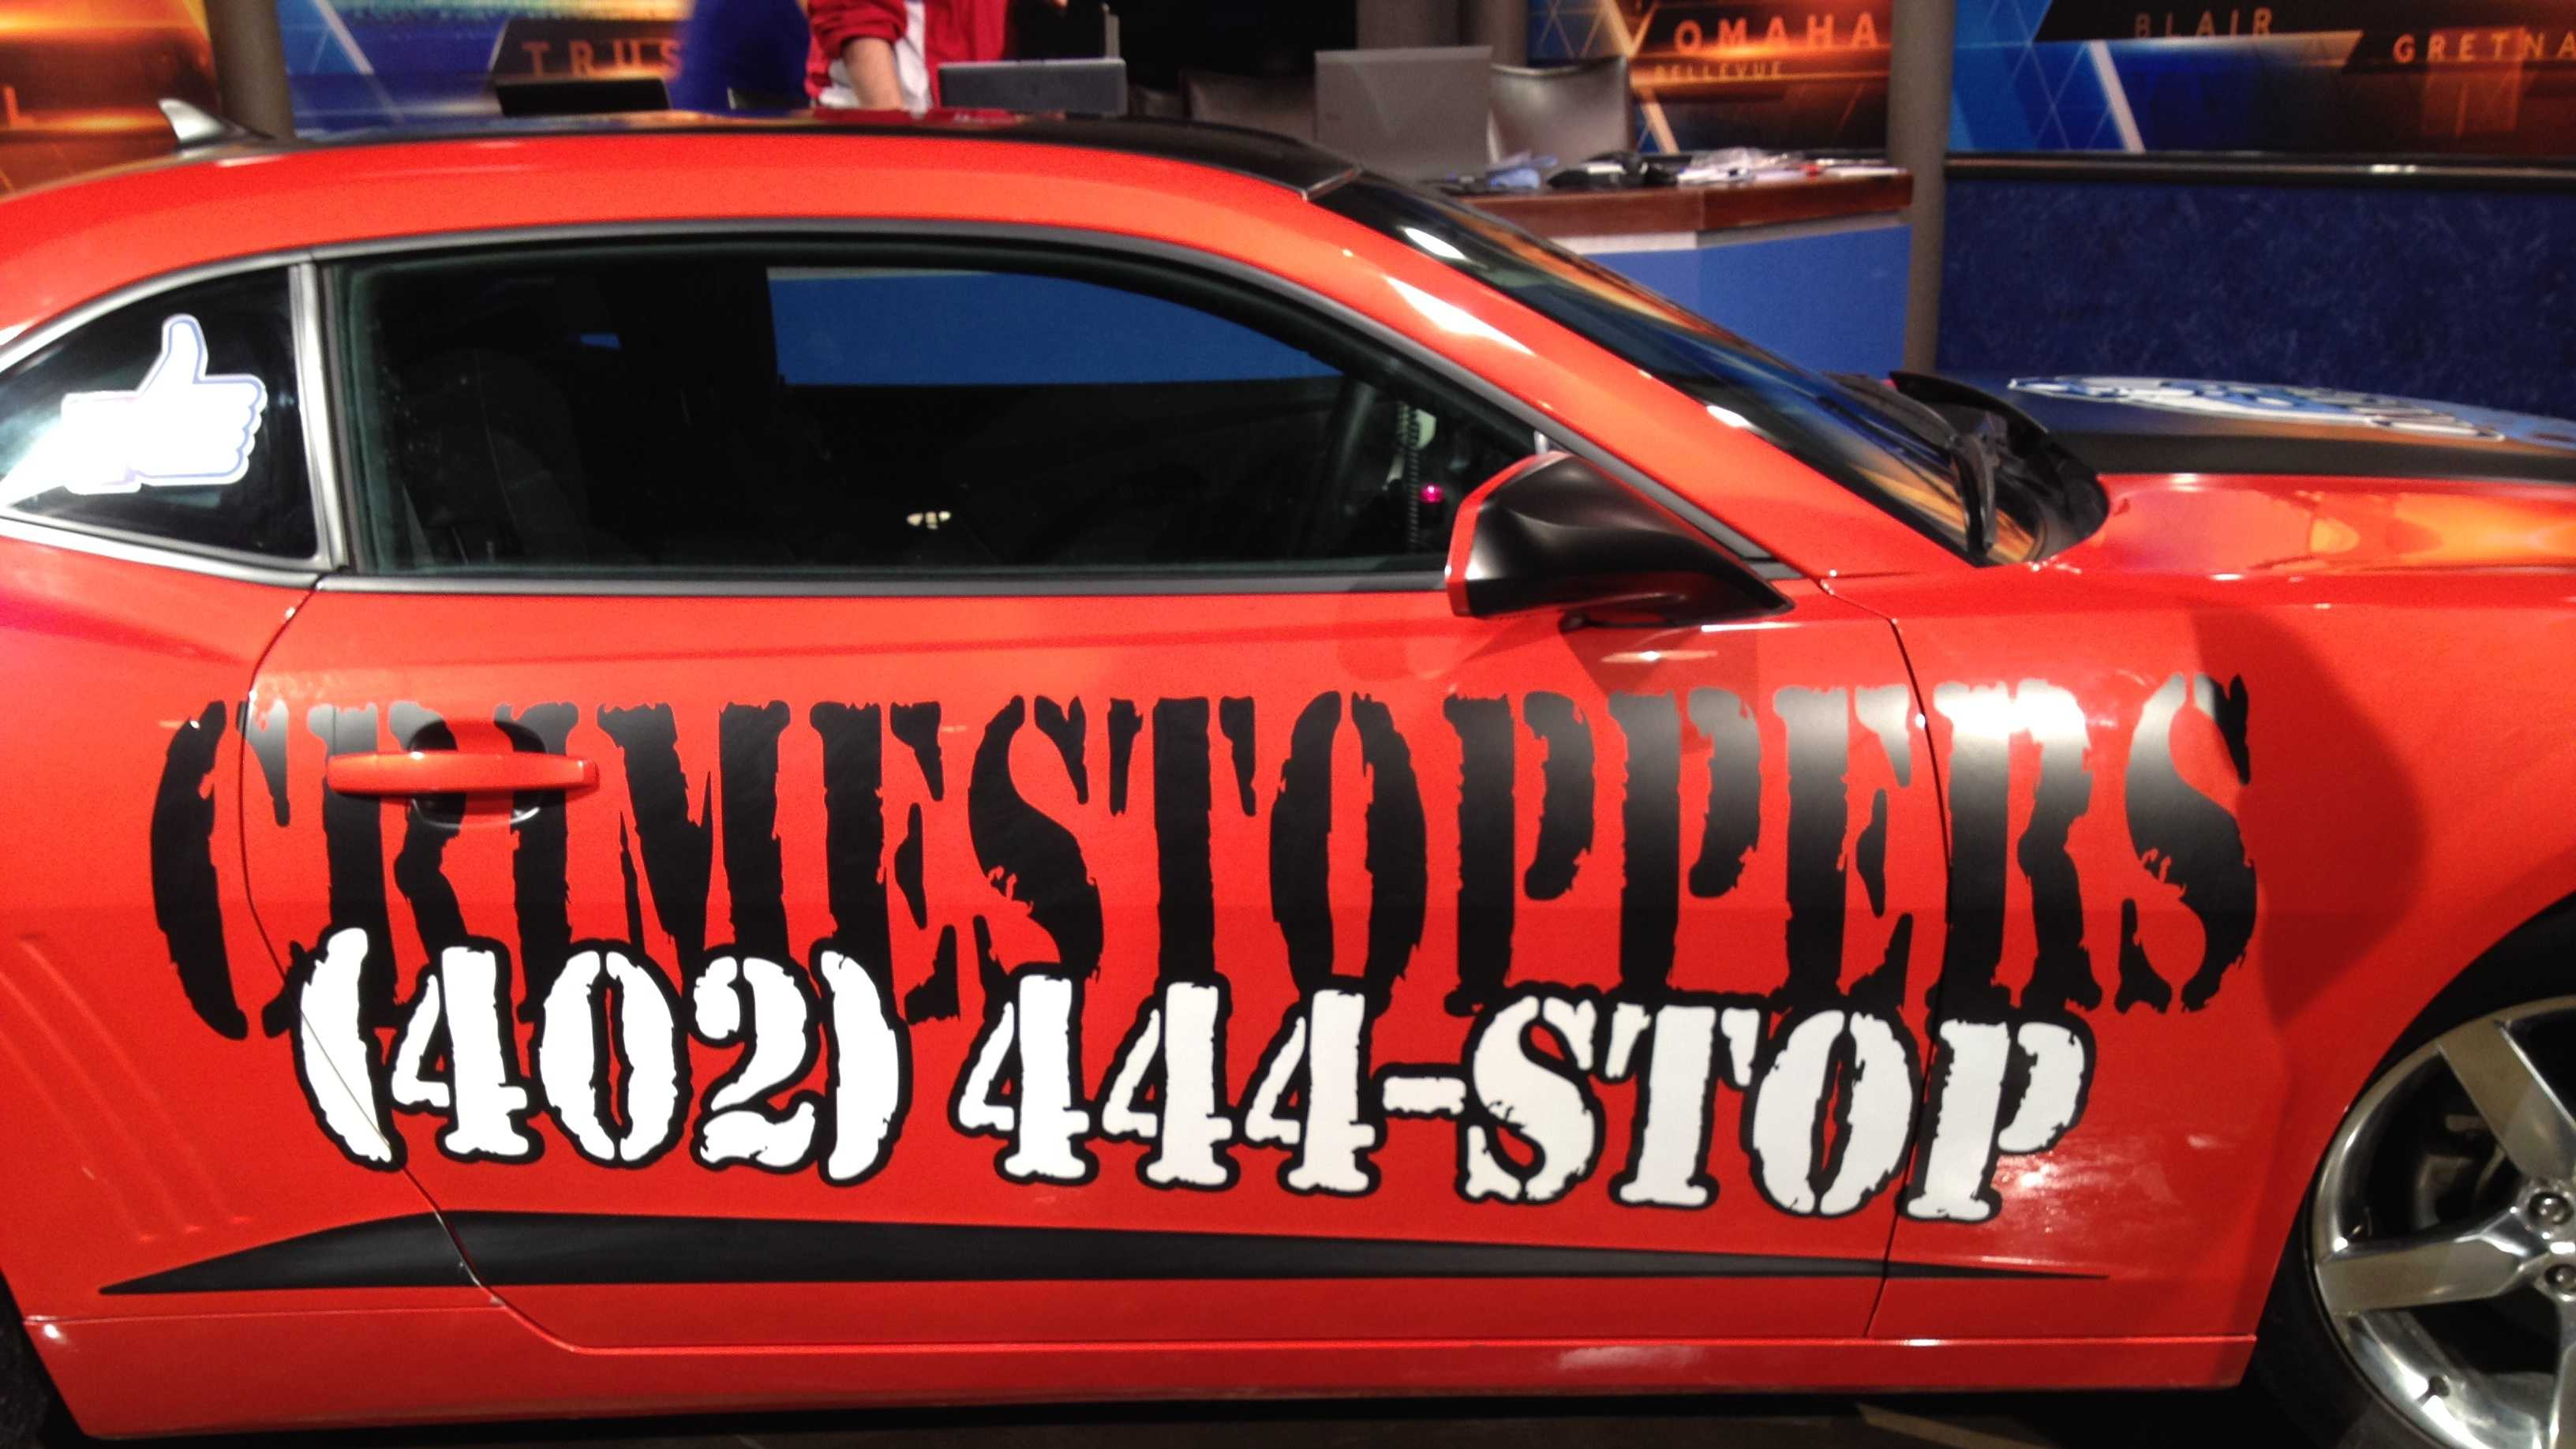 Crime Stoppers car